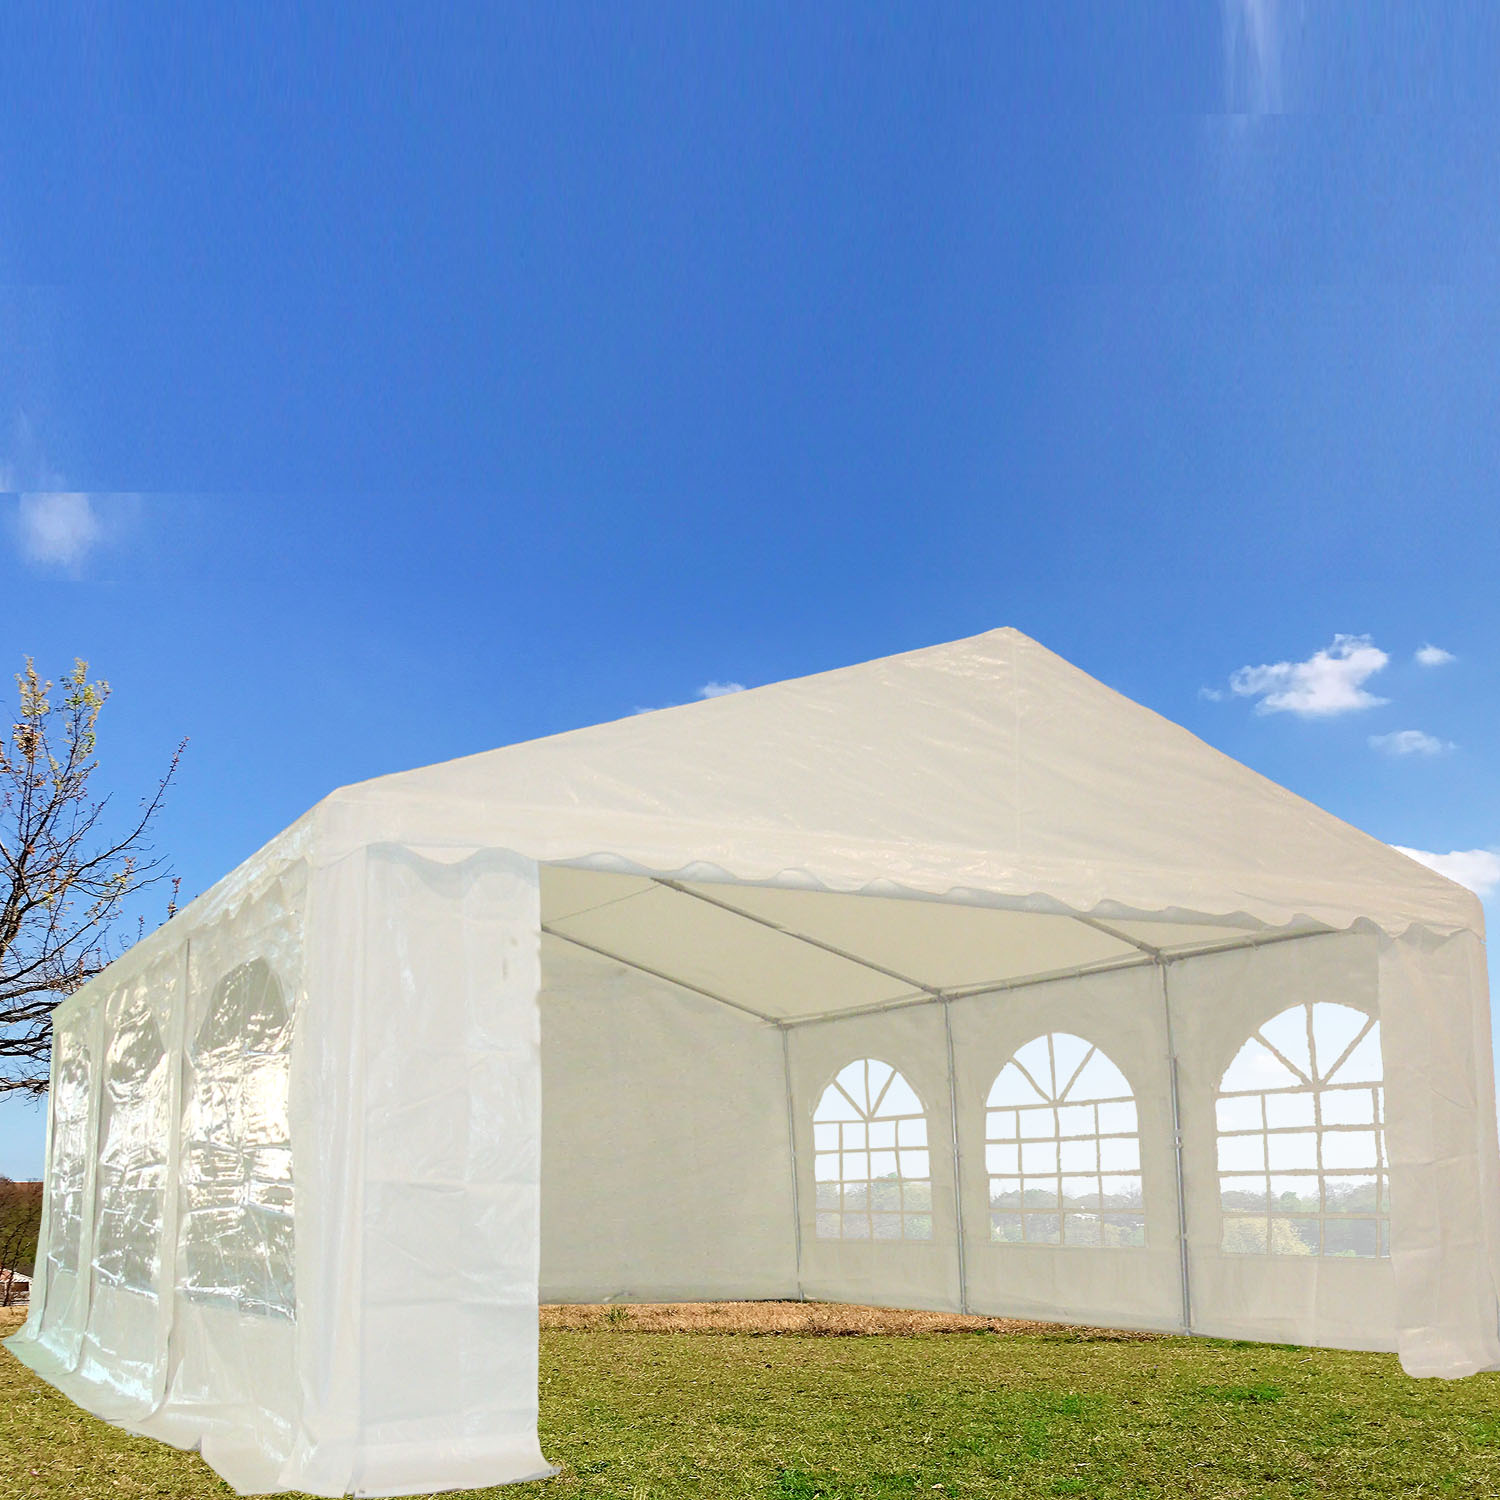 20'x16' PE Party Tent Wedding Canopy Shelter - By DELTA Canopies